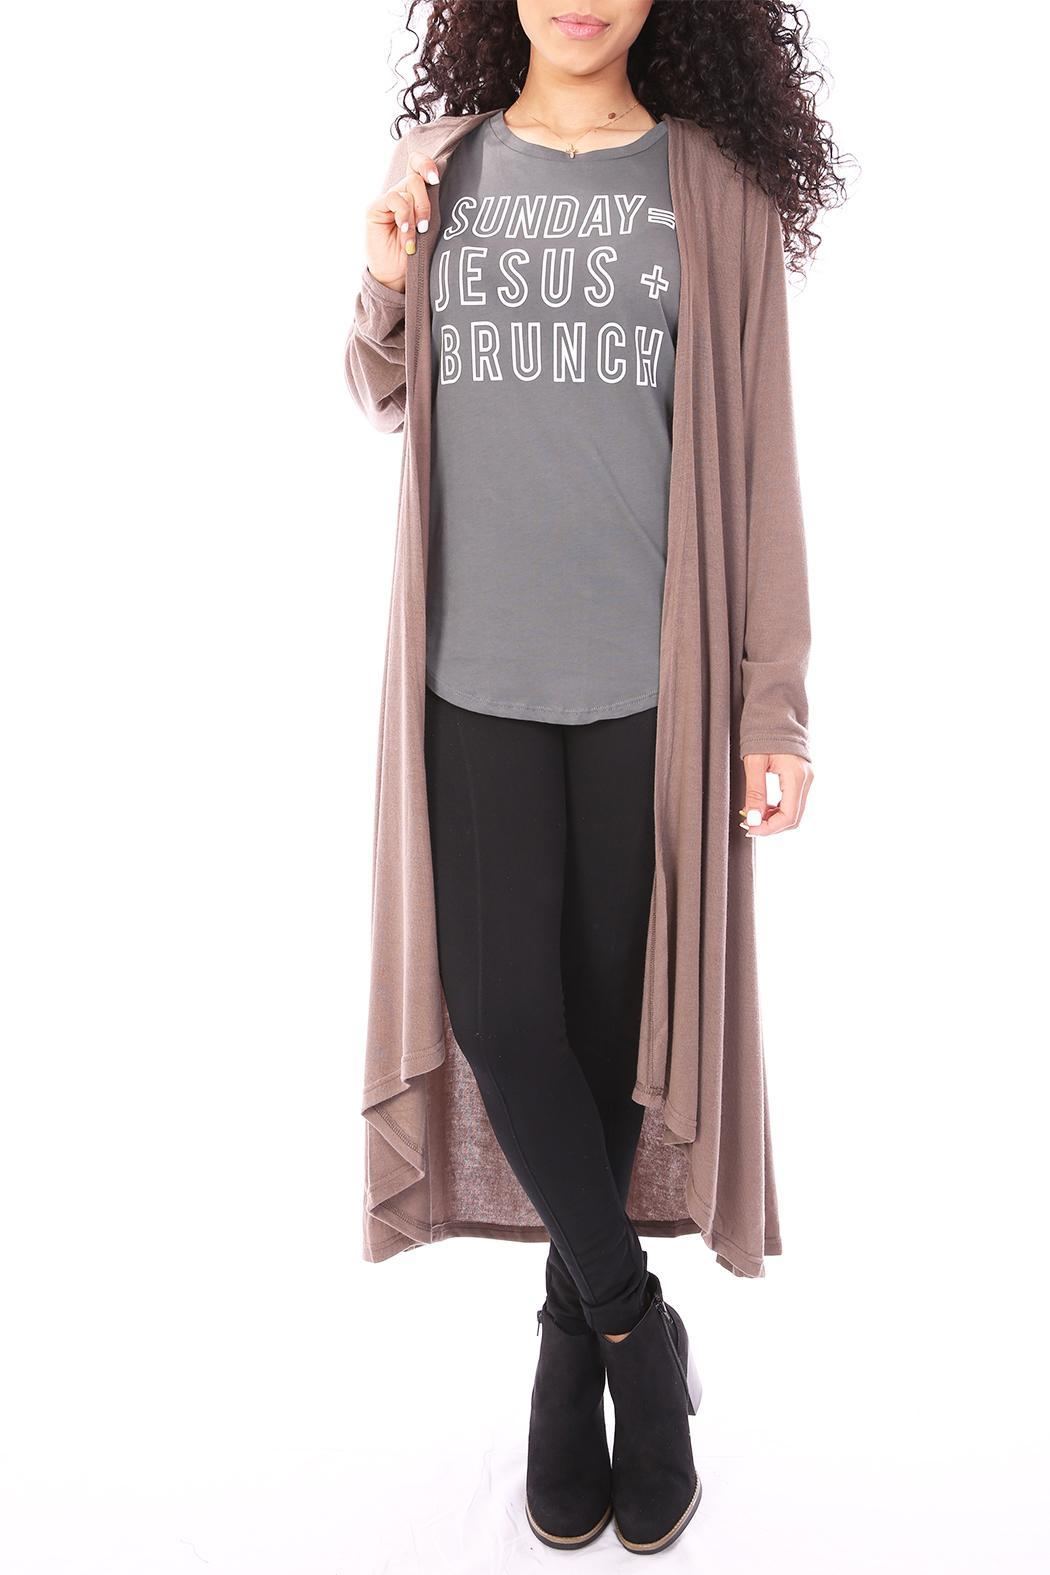 She   Sky Brown Duster Cardigan from Dallas by Tangled Society ...